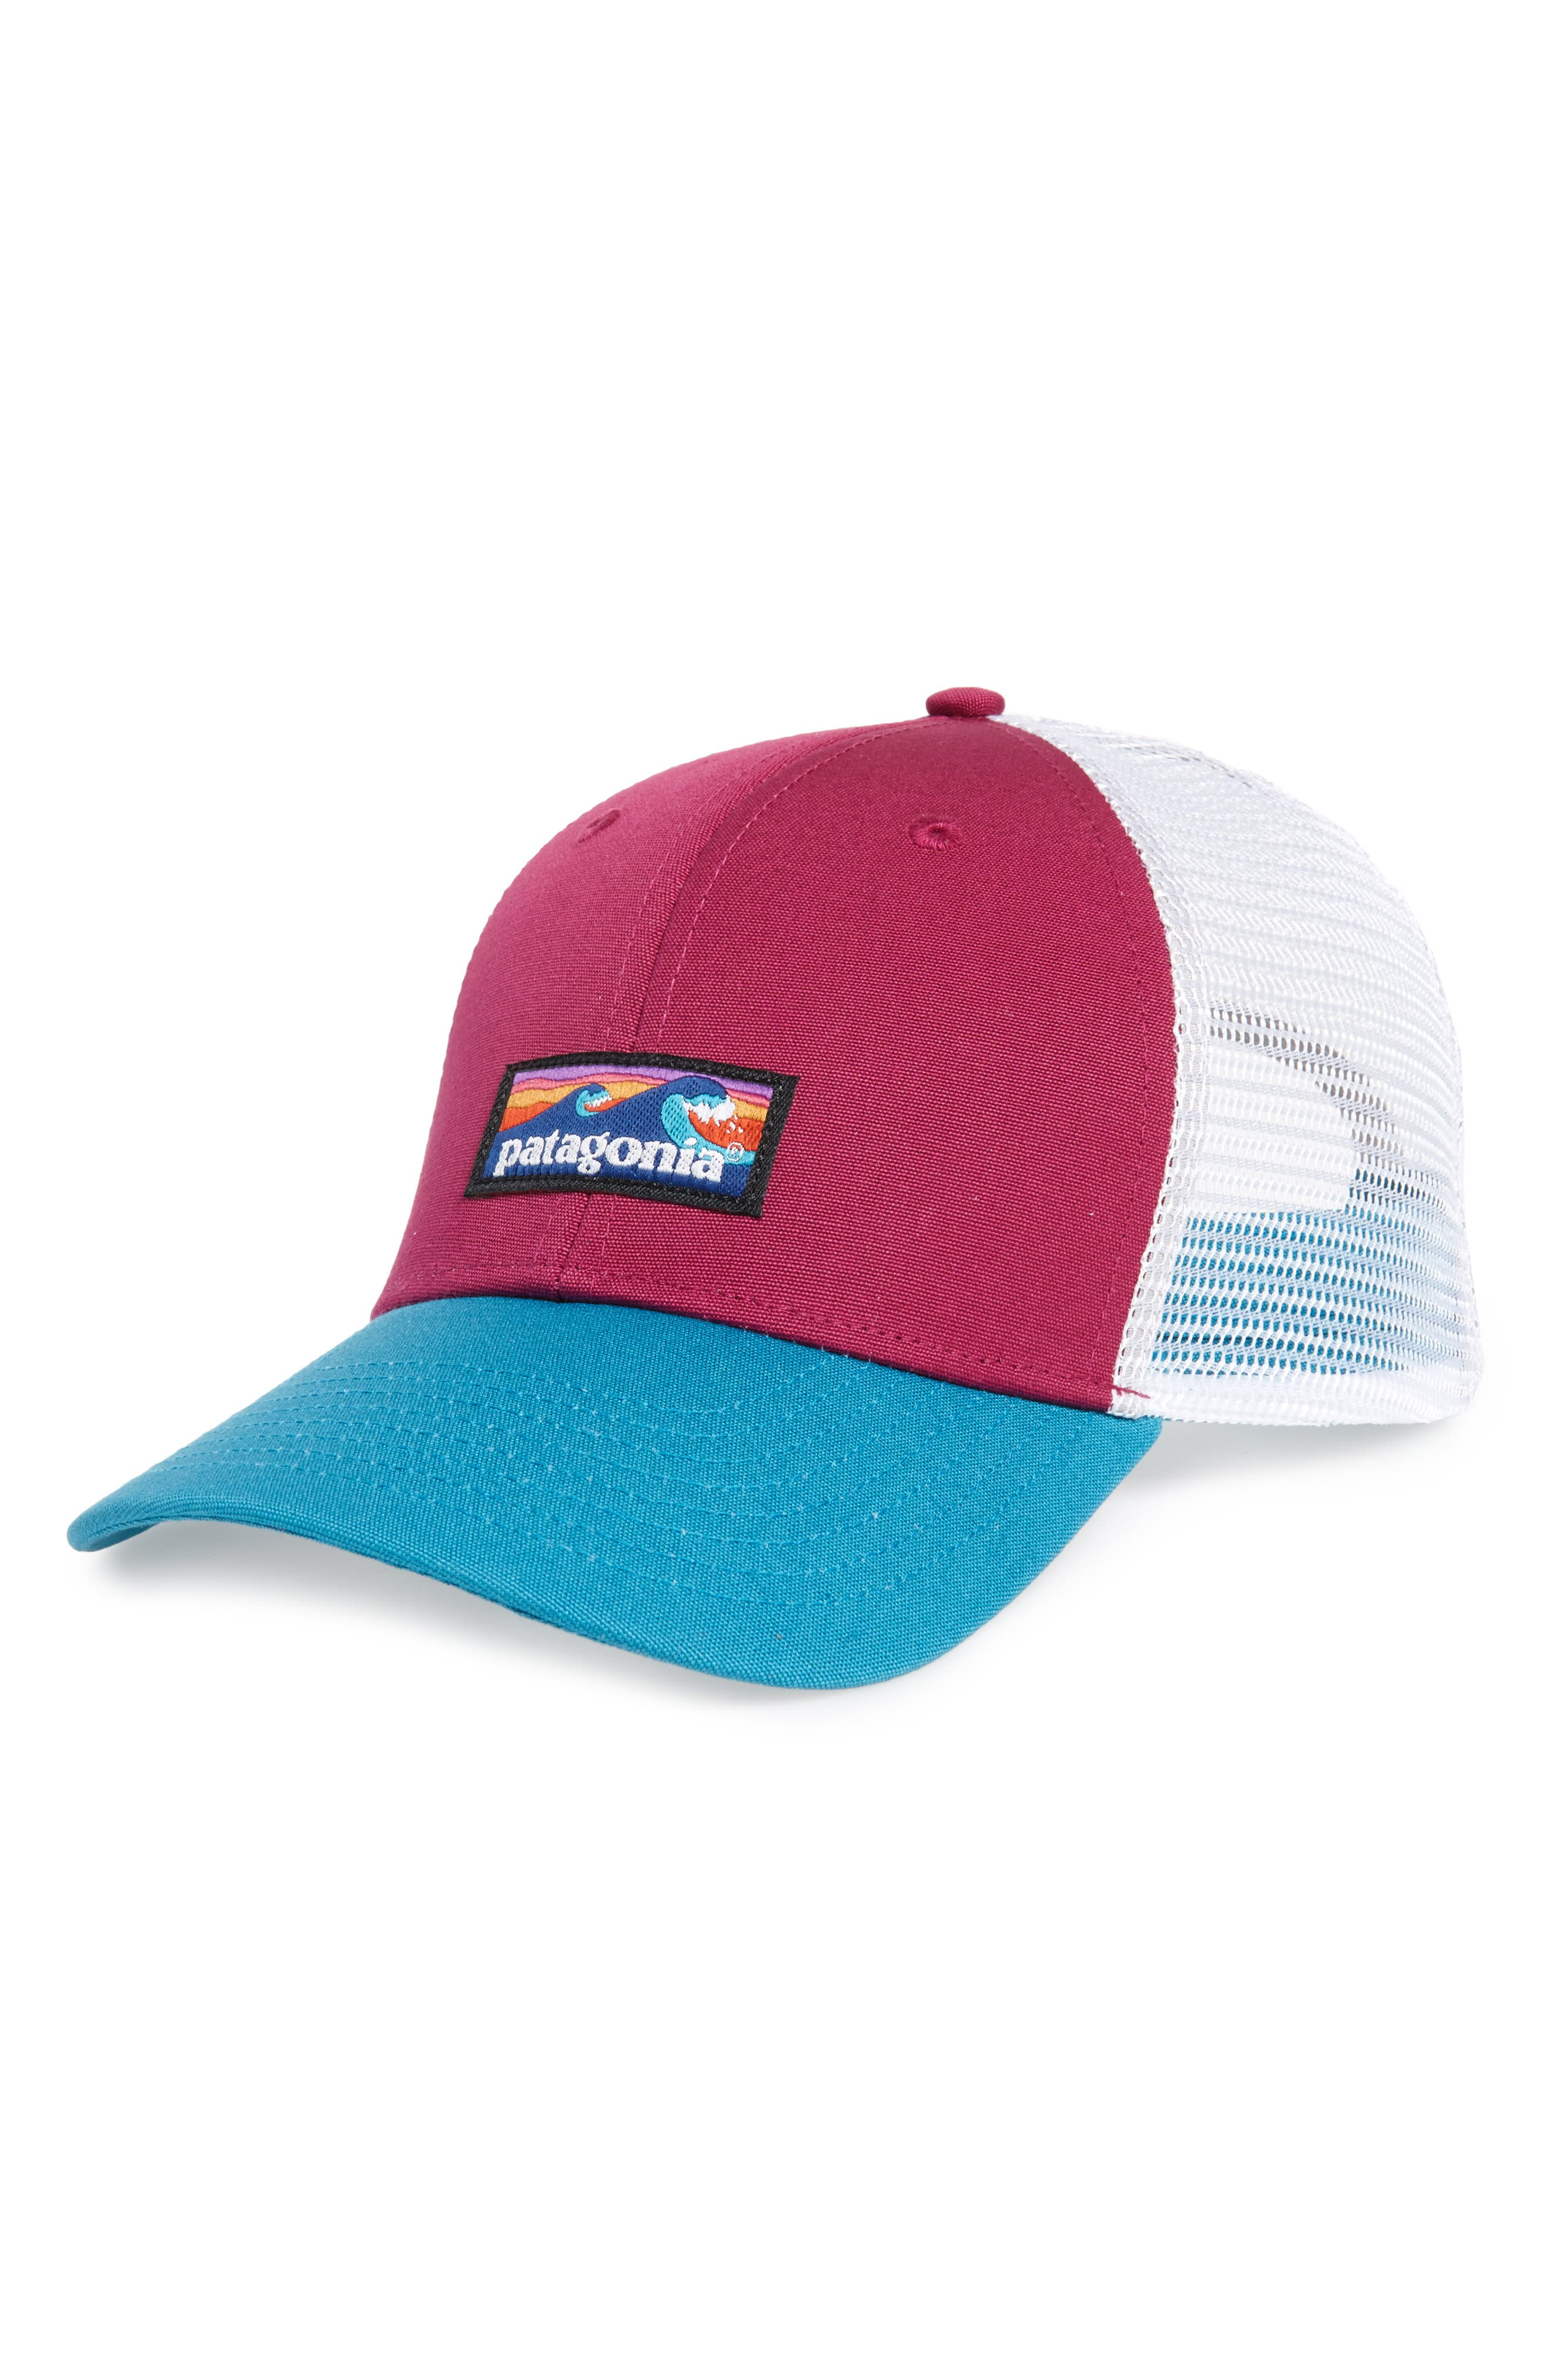 PATAGONIA Board Short Trucker Hat